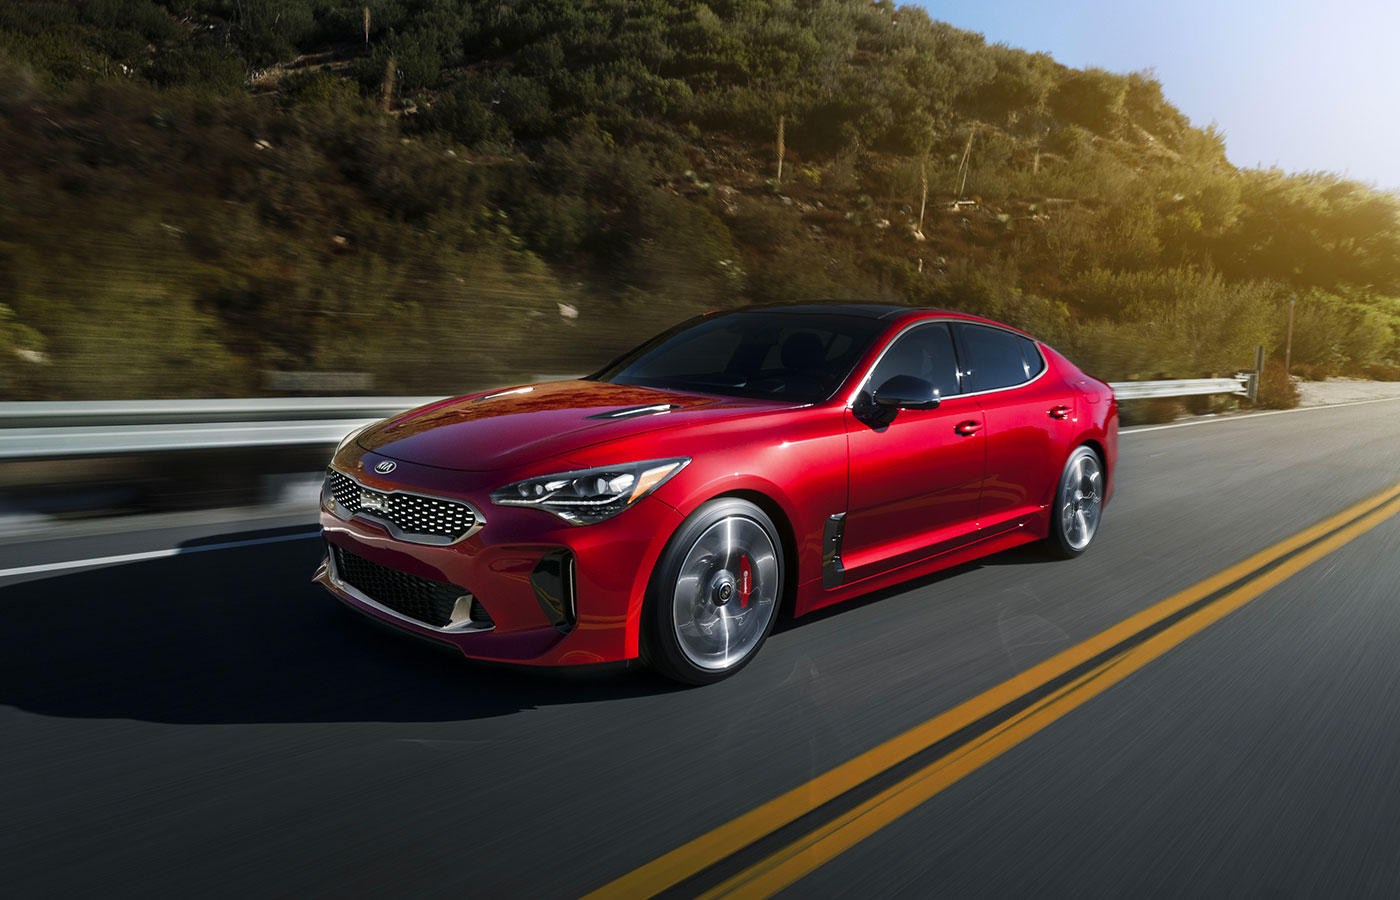 kia stinger 2018 llega a m xico conoce el precio versiones y especificaciones autos actual. Black Bedroom Furniture Sets. Home Design Ideas